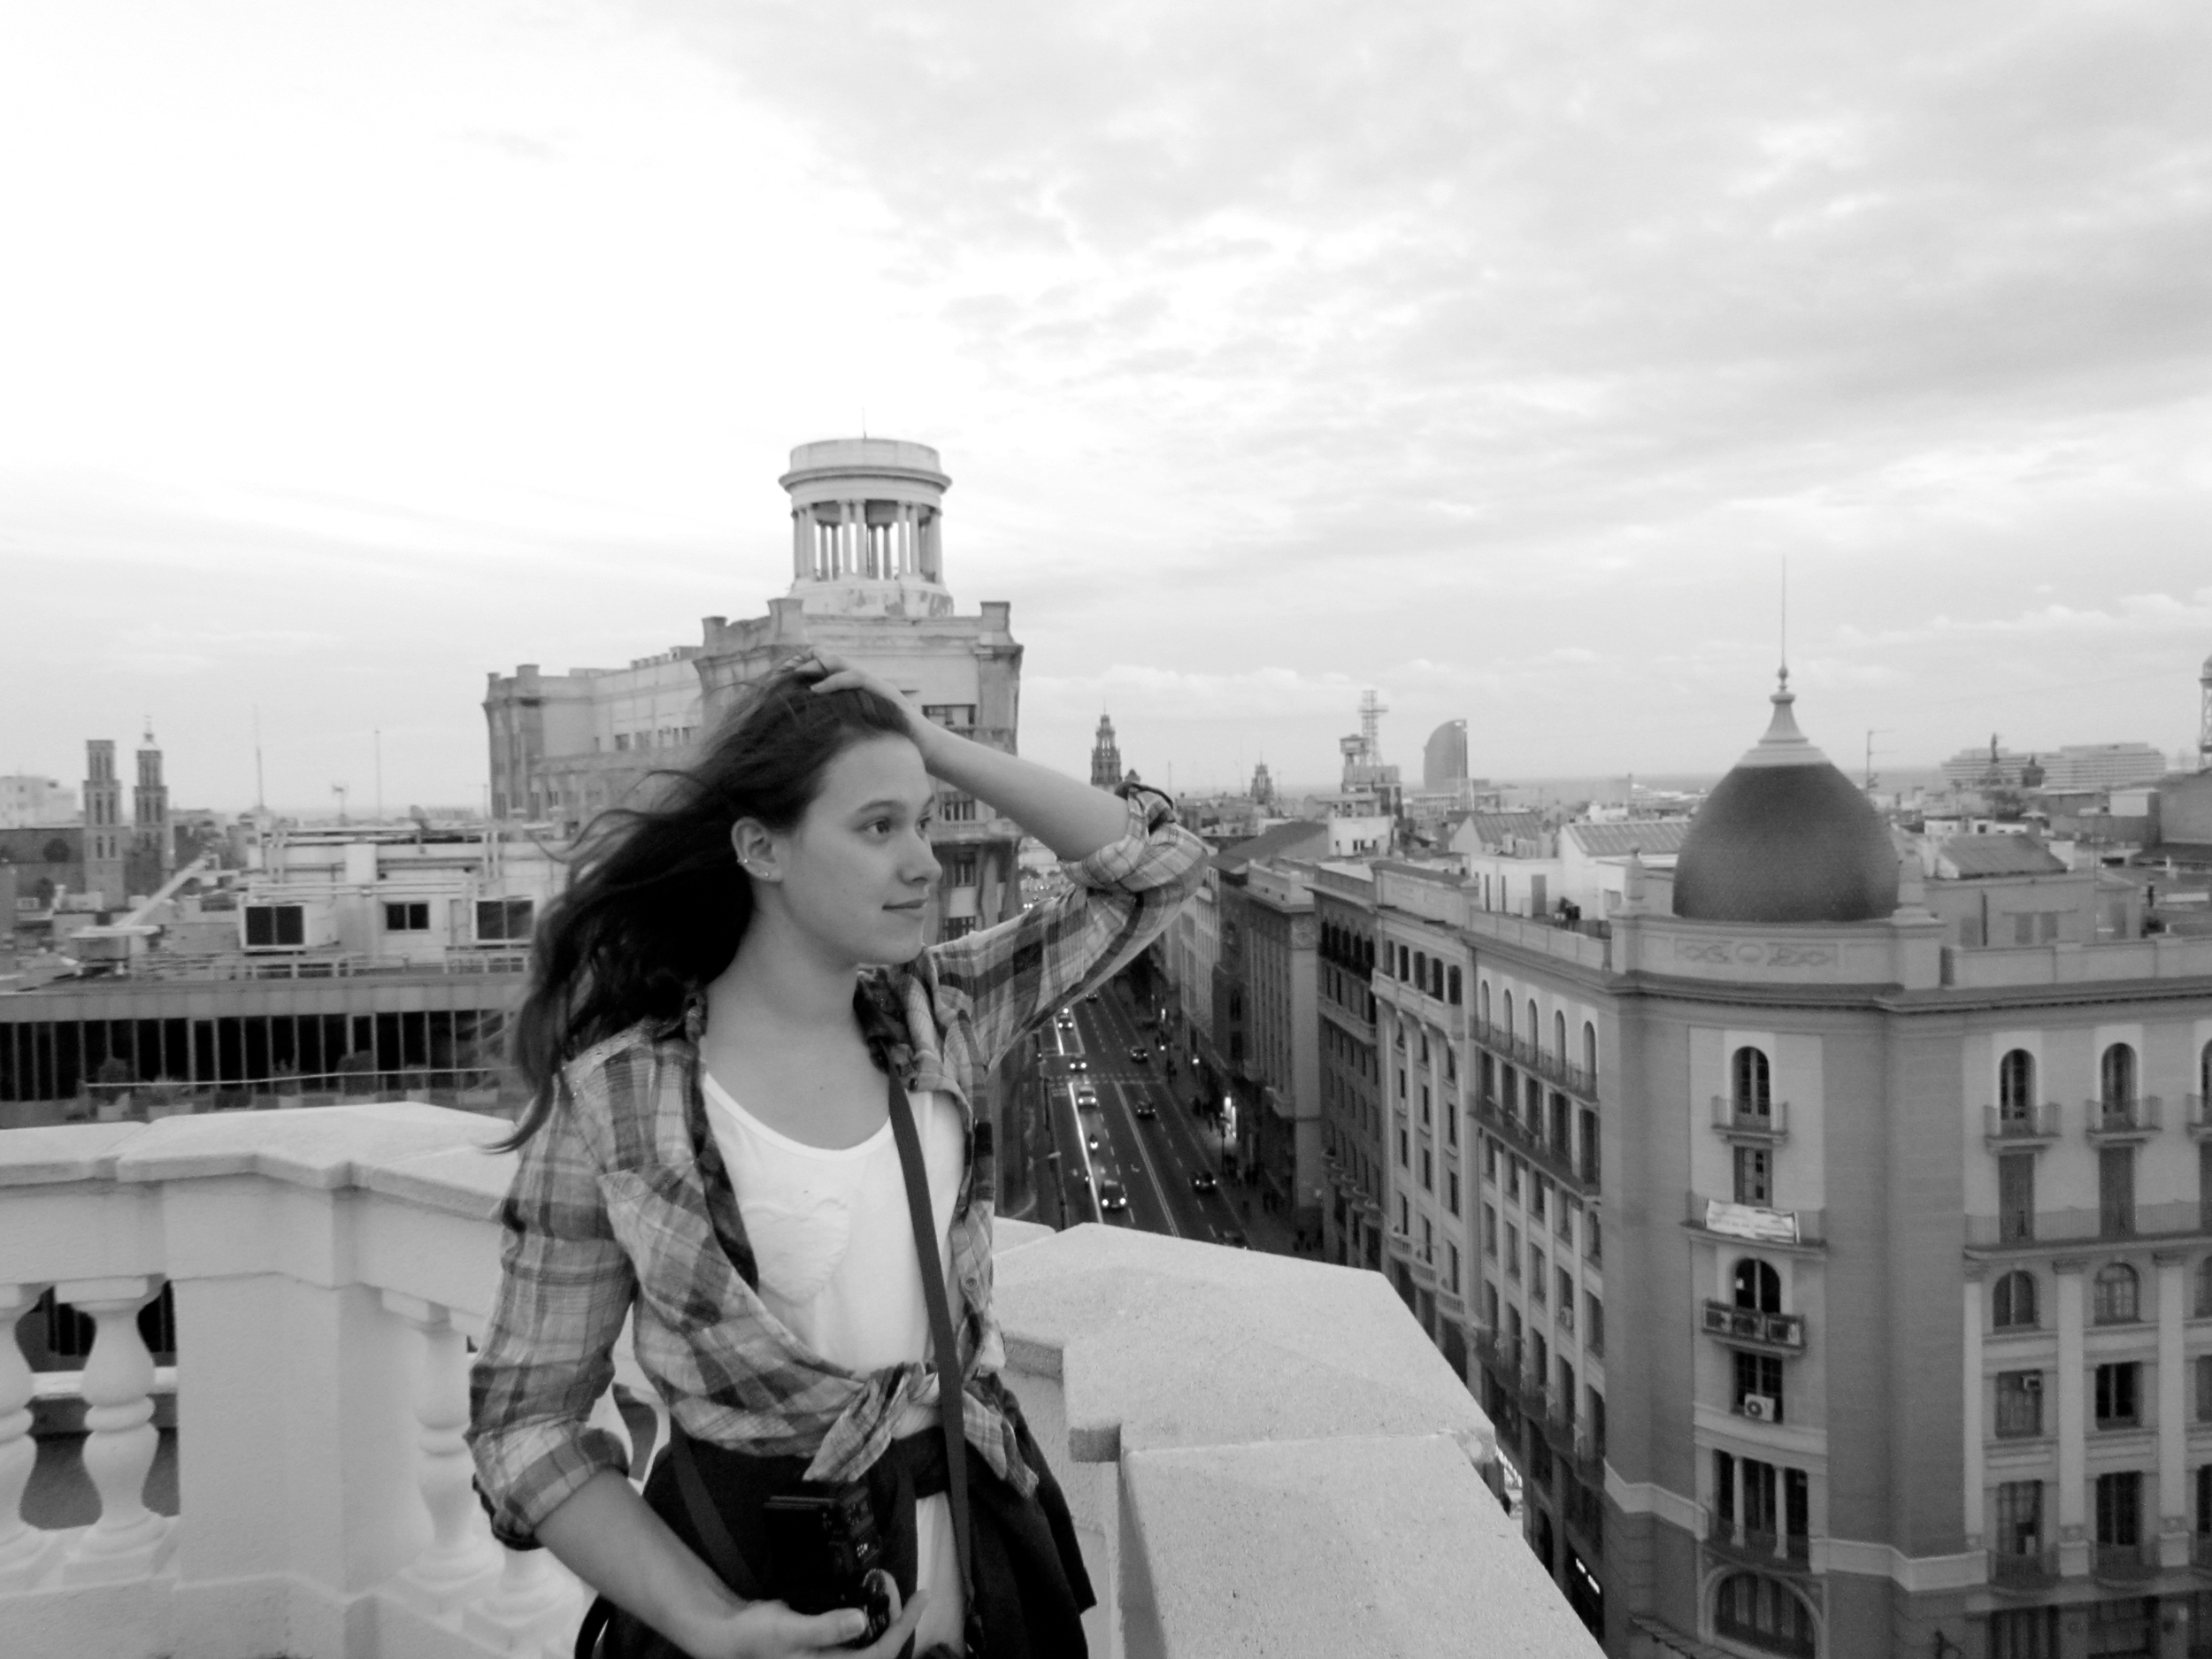 Me, Zoe, on a rooftop in Barcelona with a view of the old city